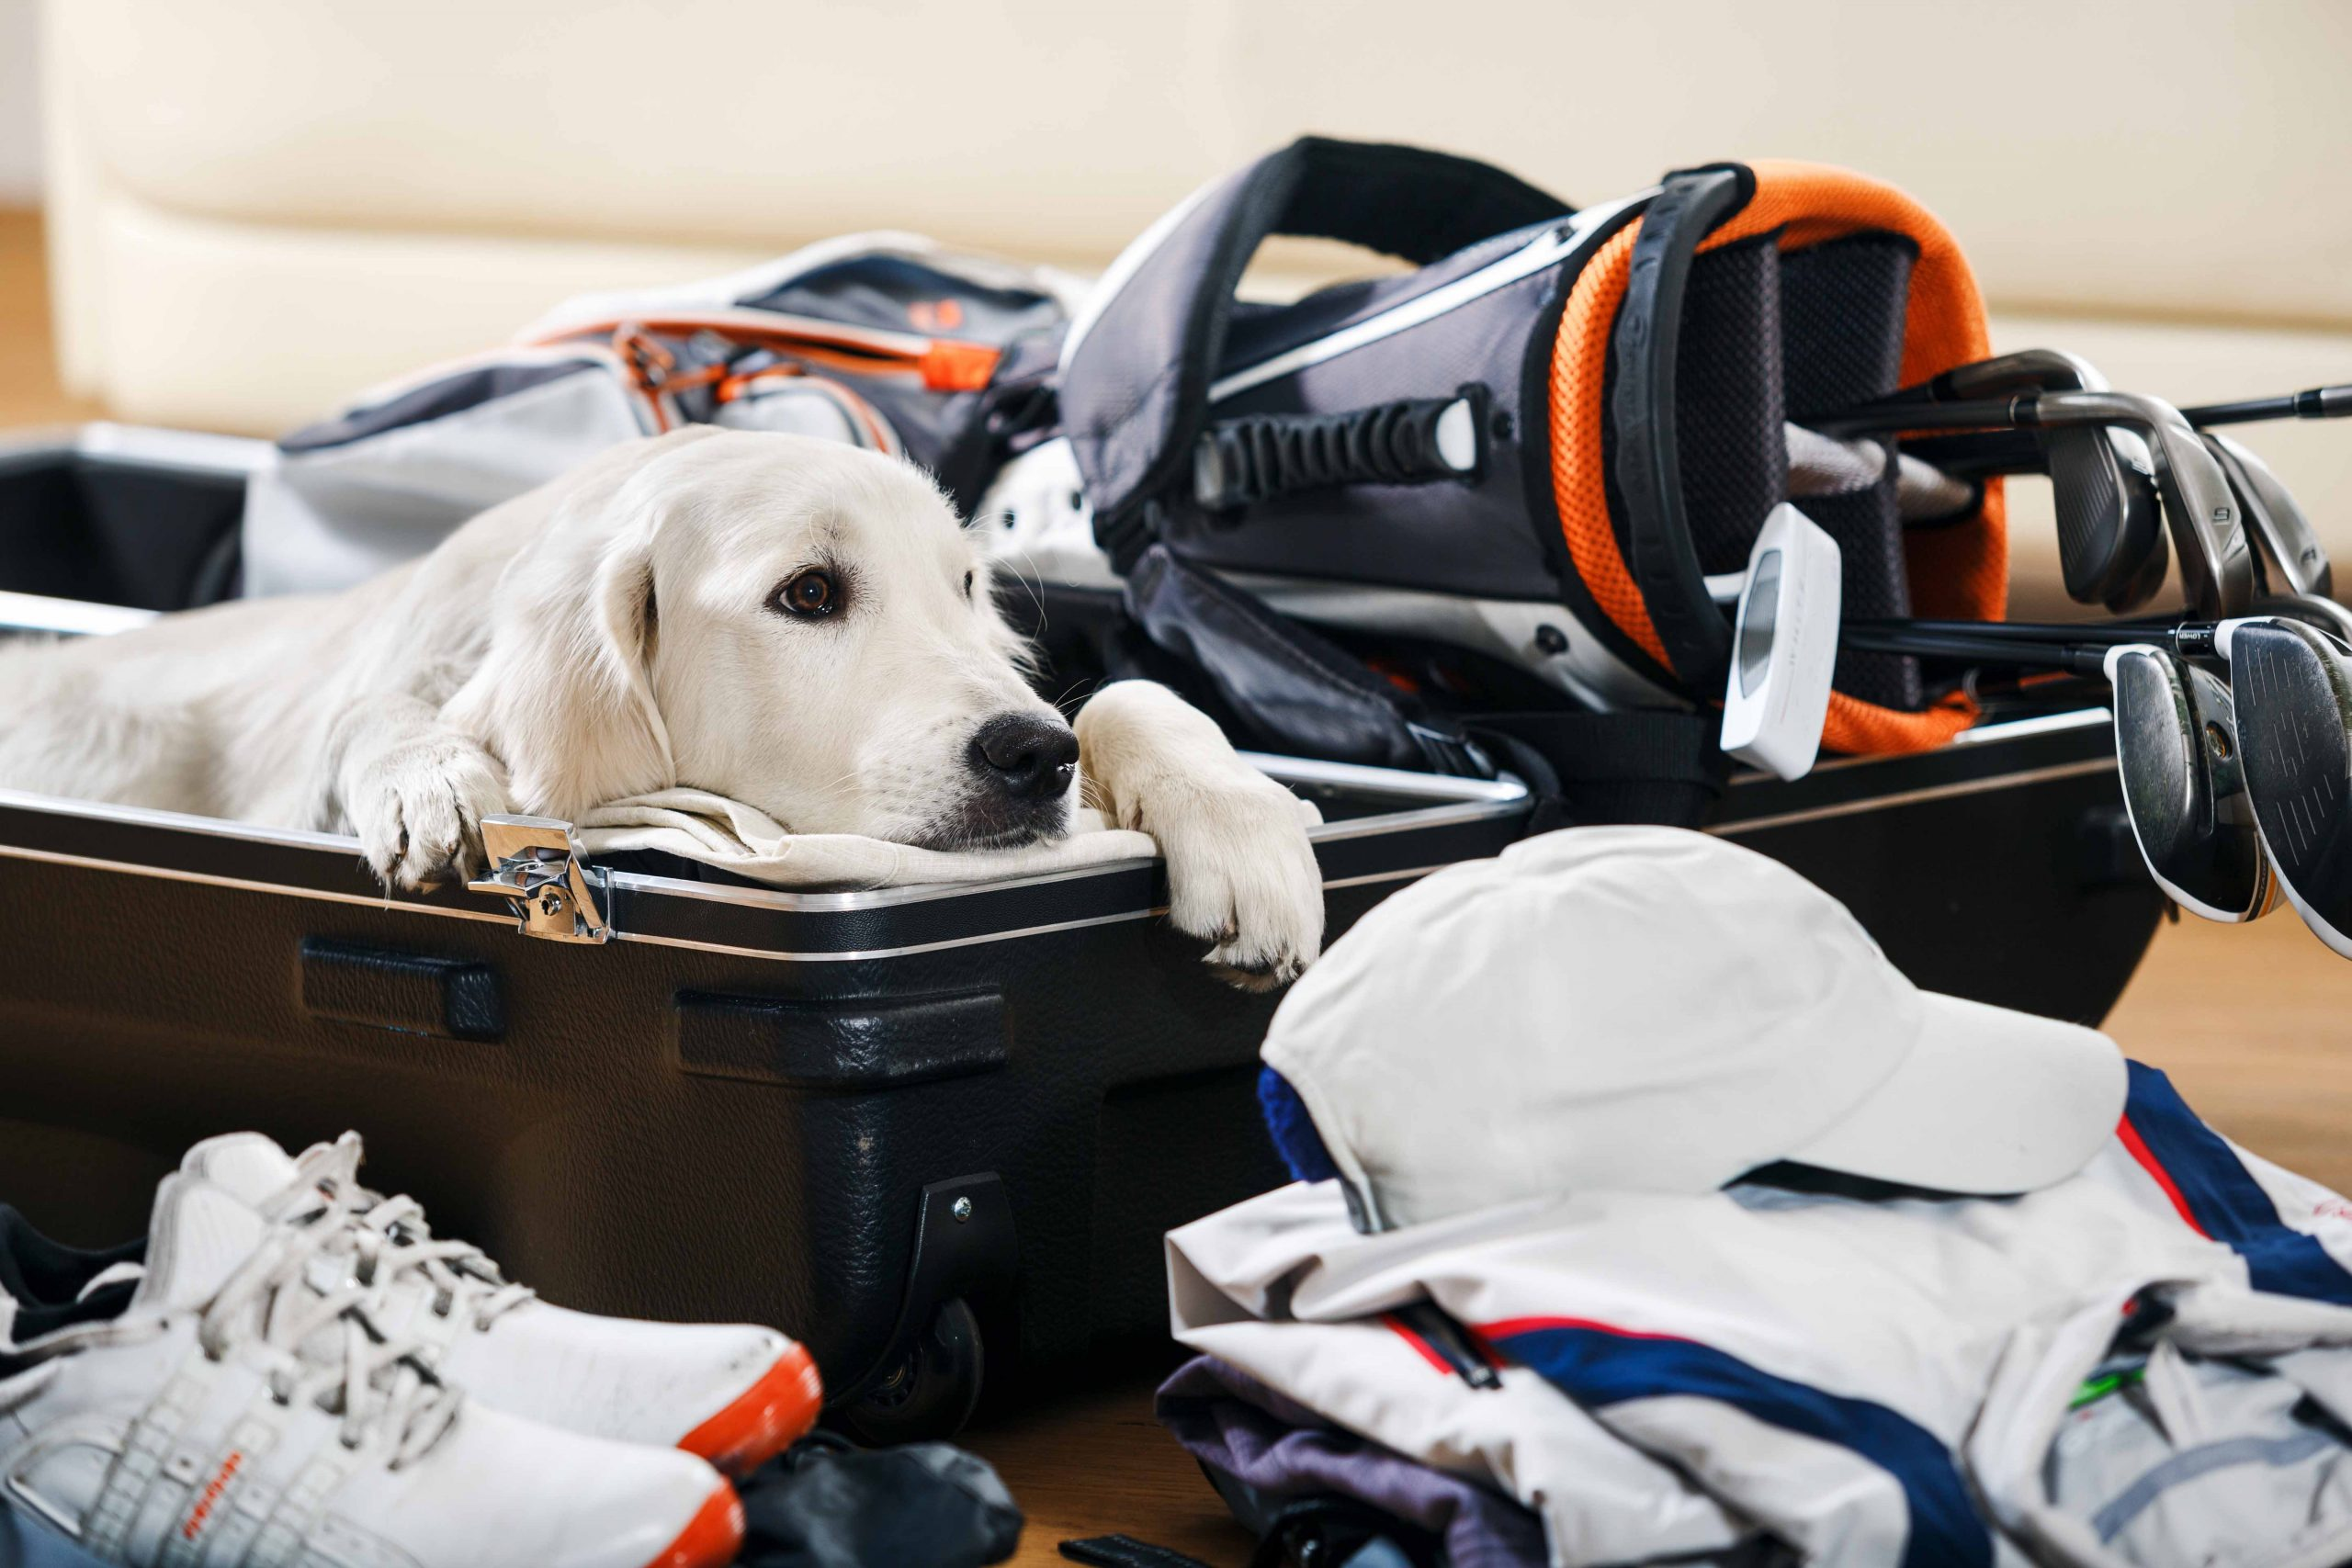 PuttBANDIT   Visibly Better Putting   Dog in suitcase next to clubs